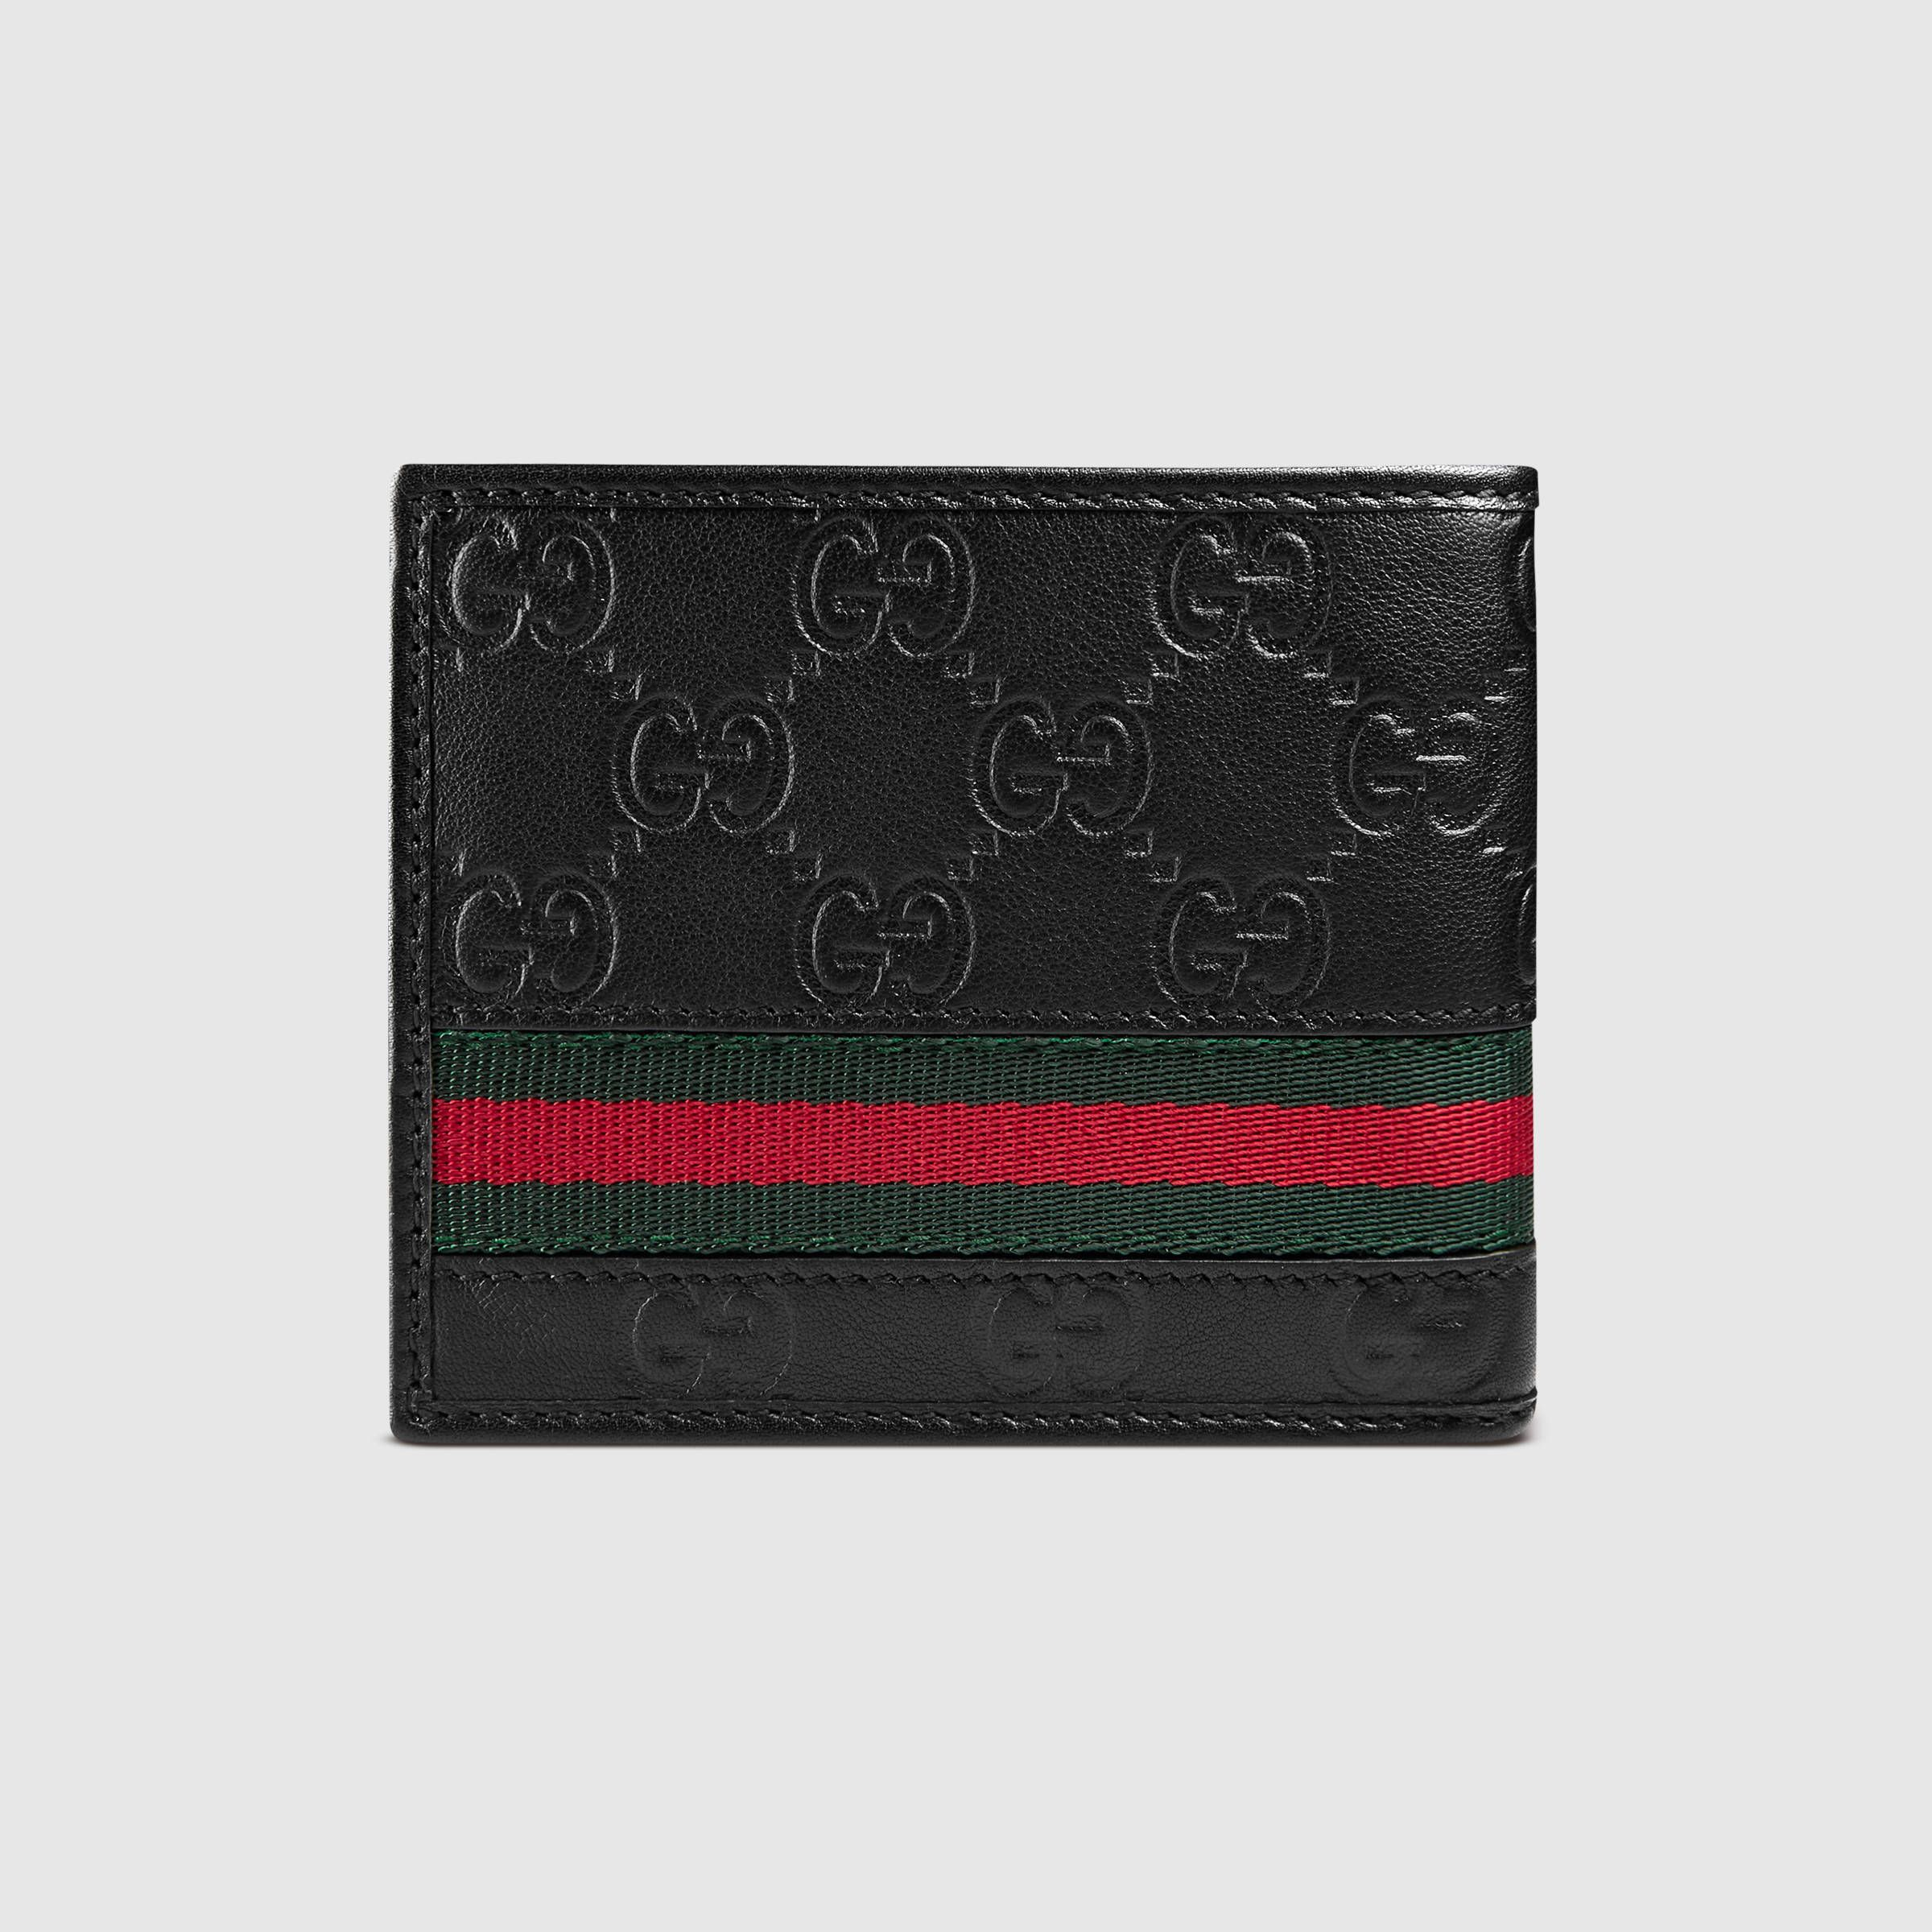 4f9d5e26f3e Gucci Men - Guccissima web bi-fold wallet - 138042A0VBR1060 More